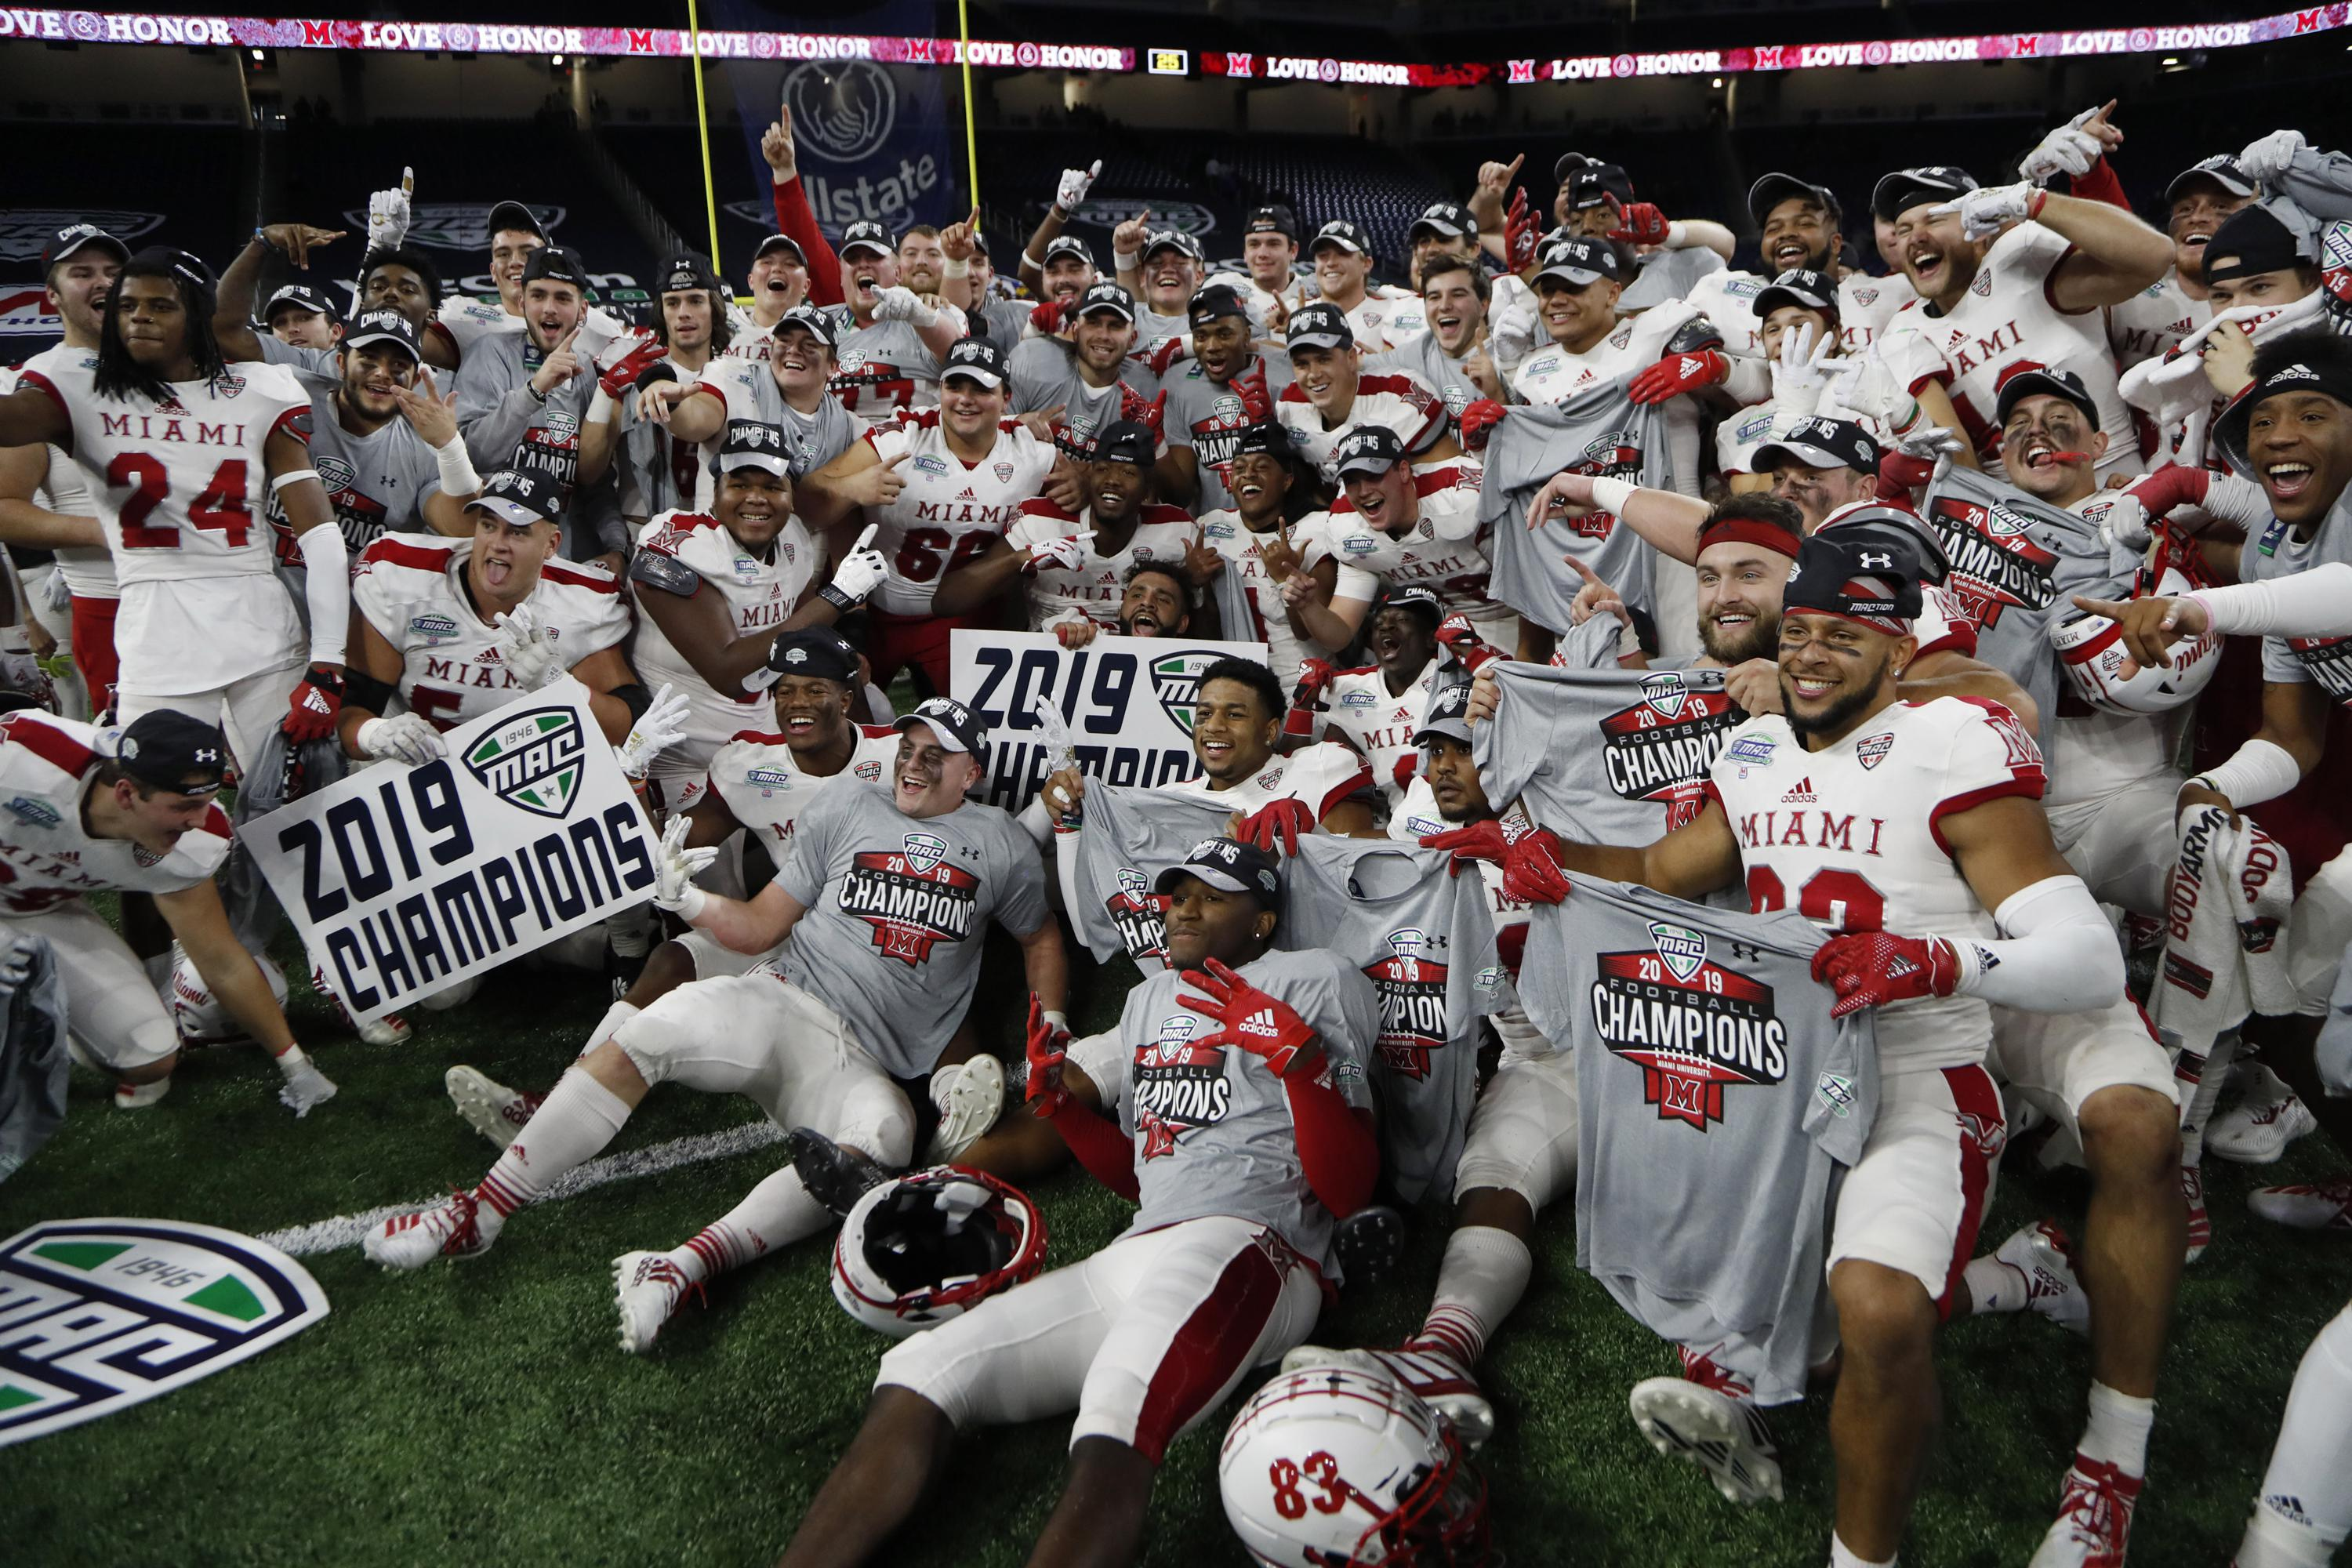 Mid-American Conference becomes 1st major college football conference to cancel fall season.